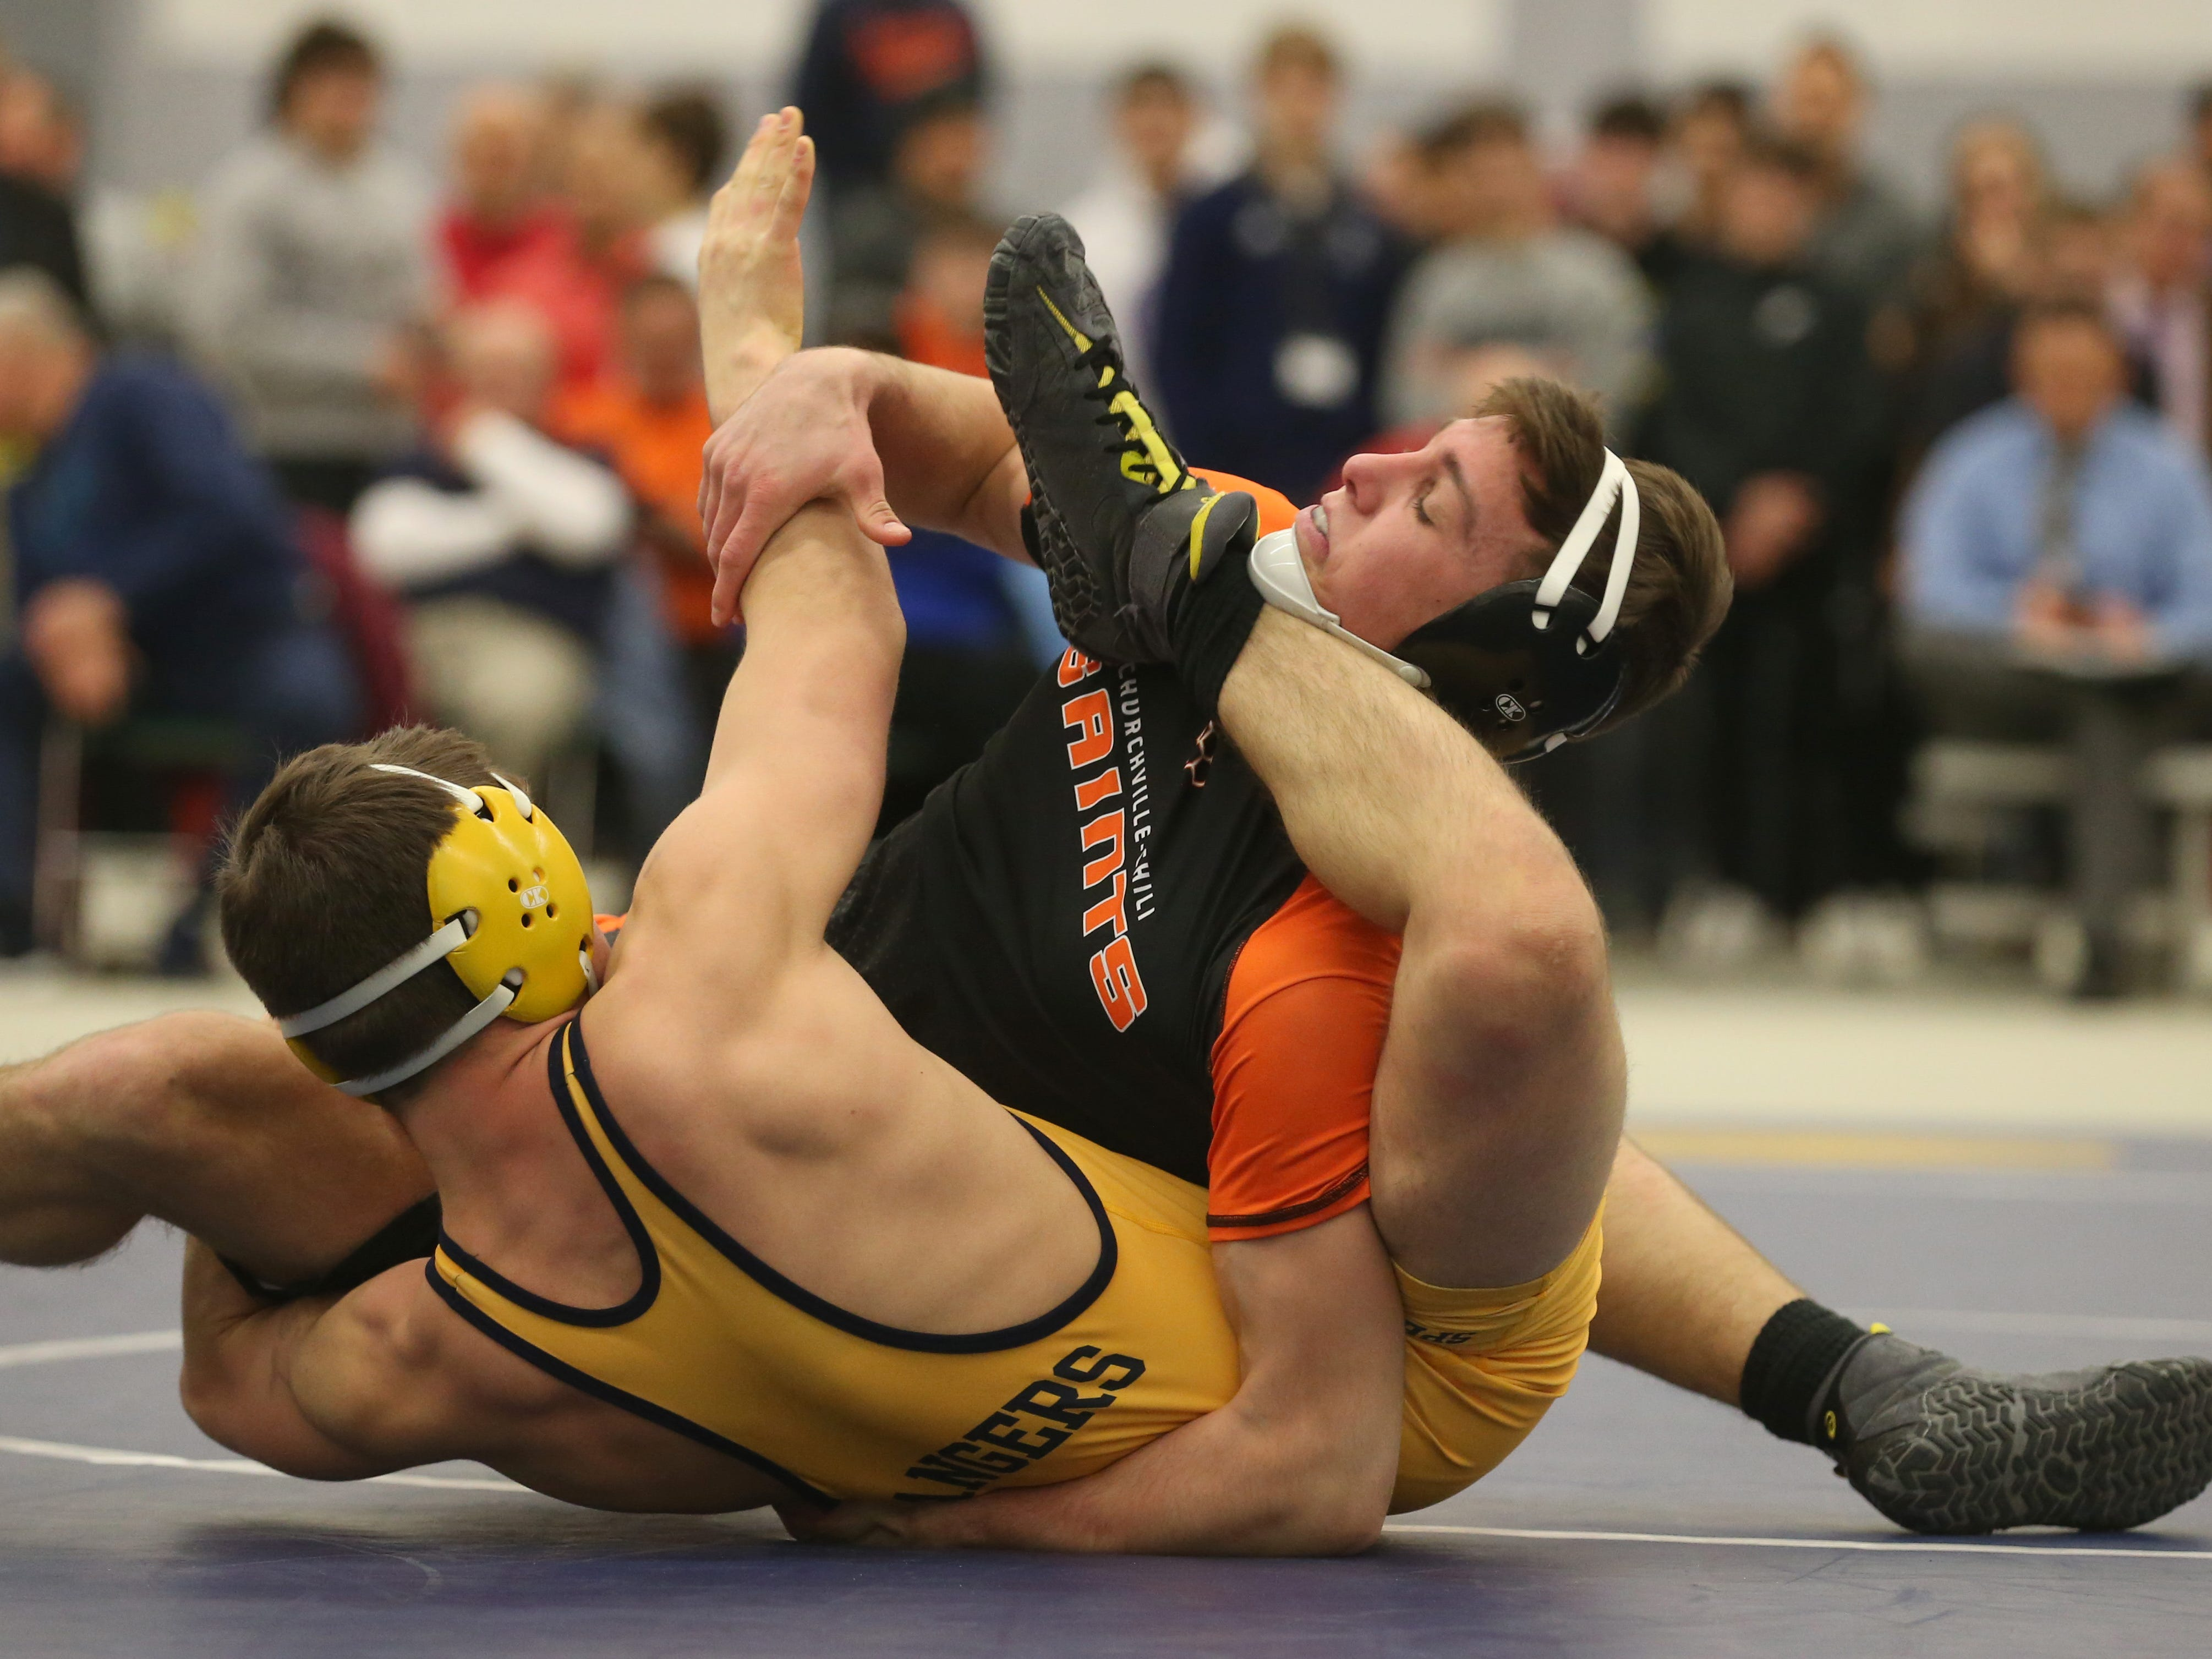 Churchville Chili's Ty Raines, right top, battles for position with Michael Vinci, Spencerport, in their Division 1, 152 pound match at the 52nd Annual State Wrestling Qualifier at the College at Brockport Saturday, Feb. 9, 2019.